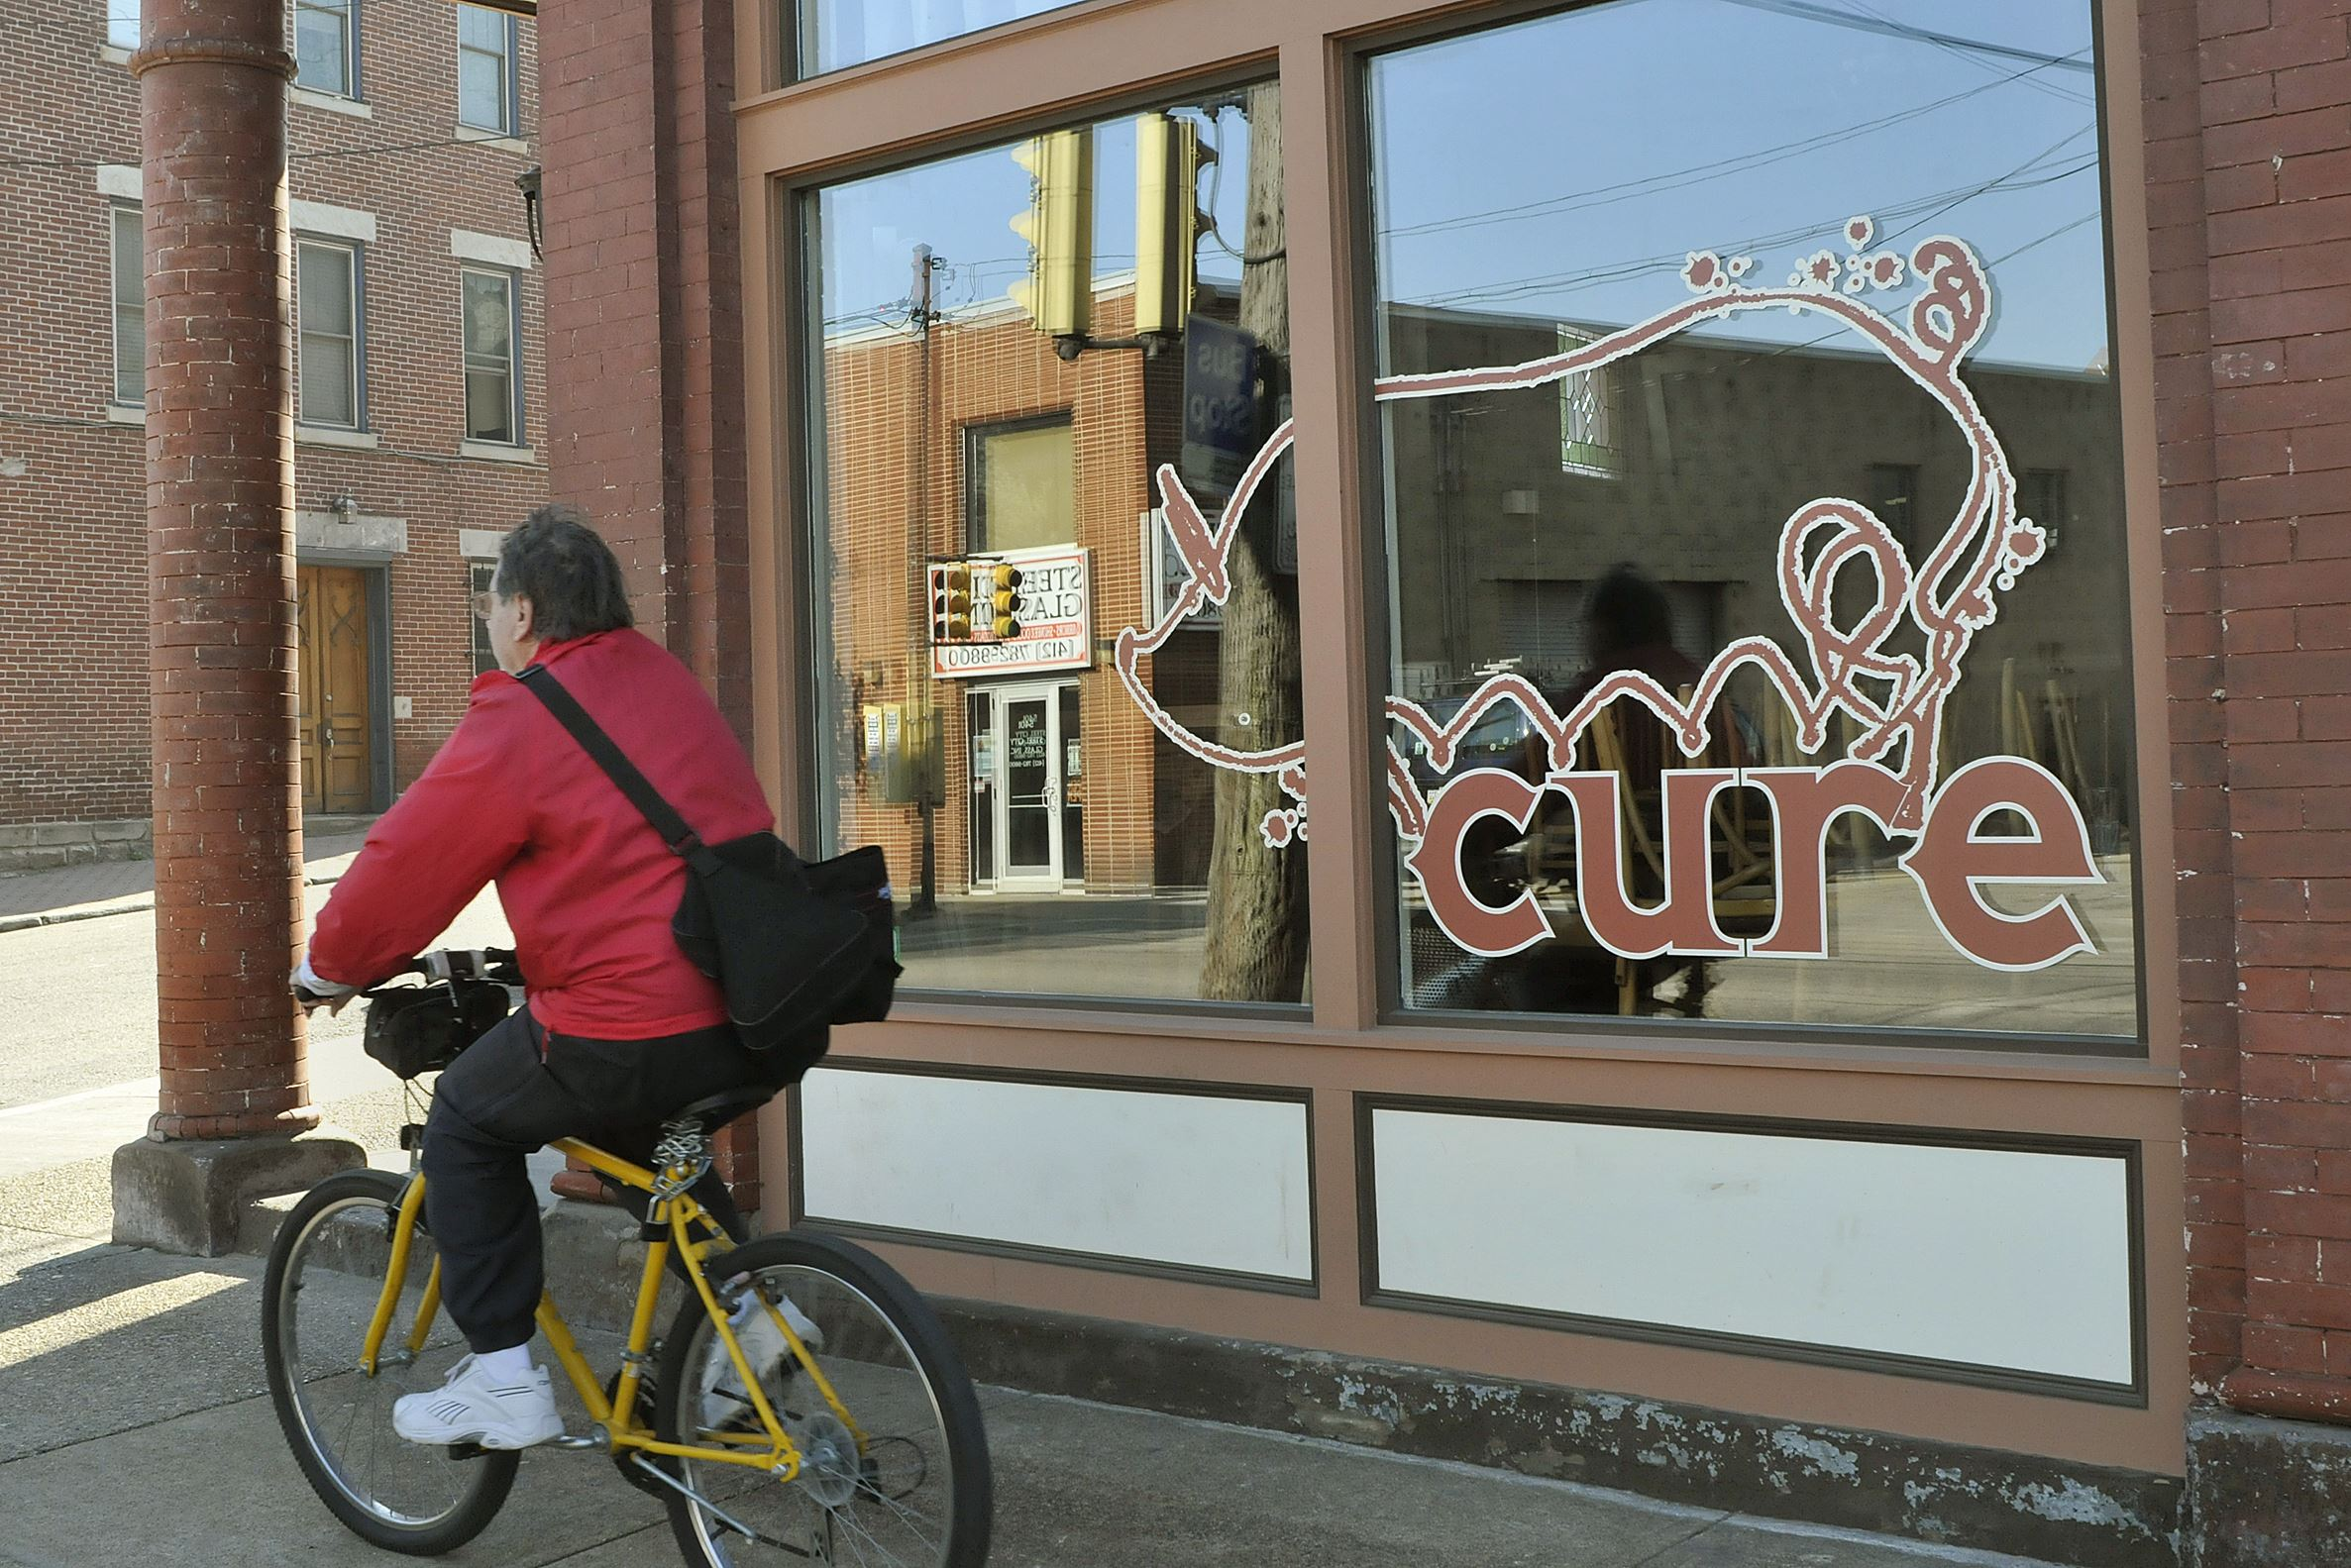 cure A bicyclist rides past Cure on Butler Street in Lawrenceville.